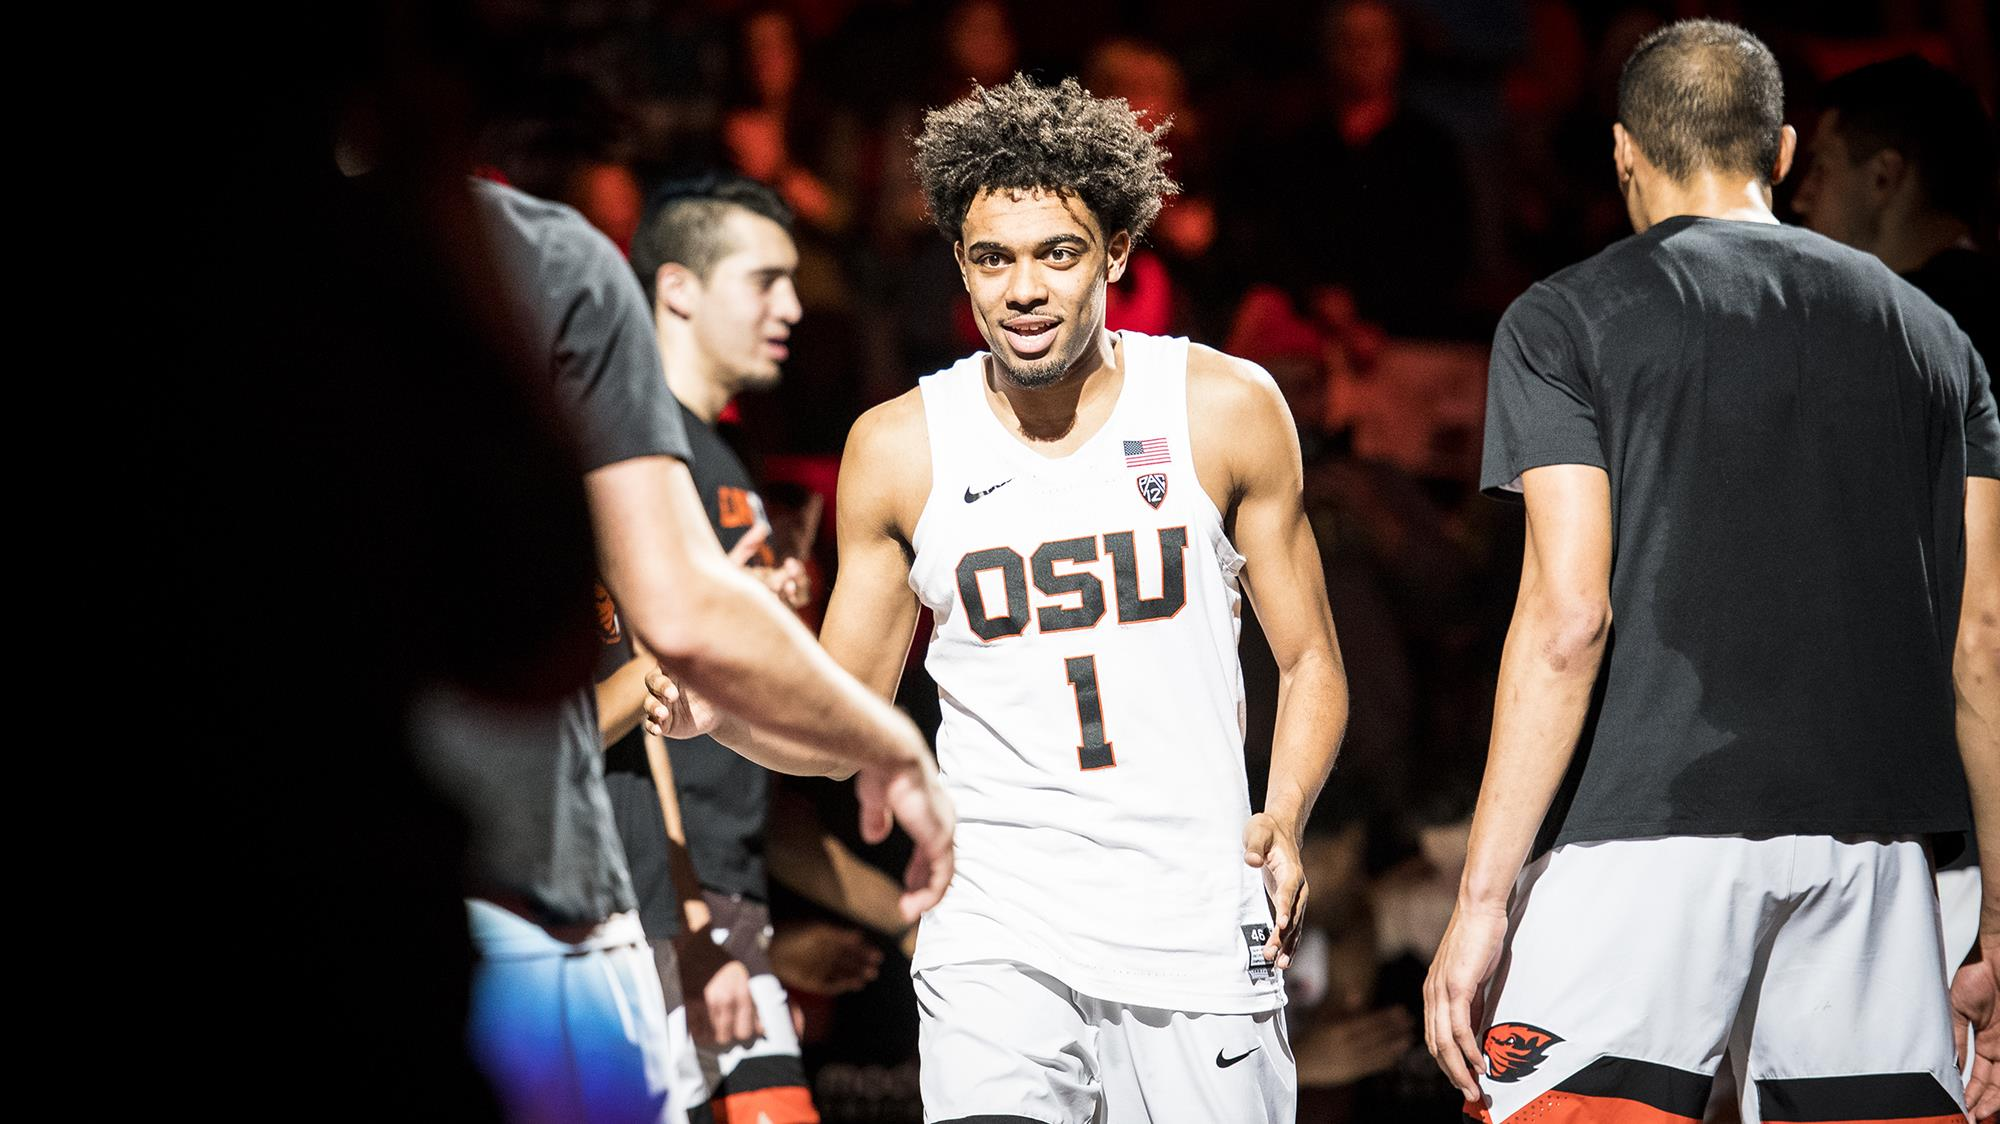 69a965067 Beavers Prepared For Pac-12 Opener - Oregon State University Athletics